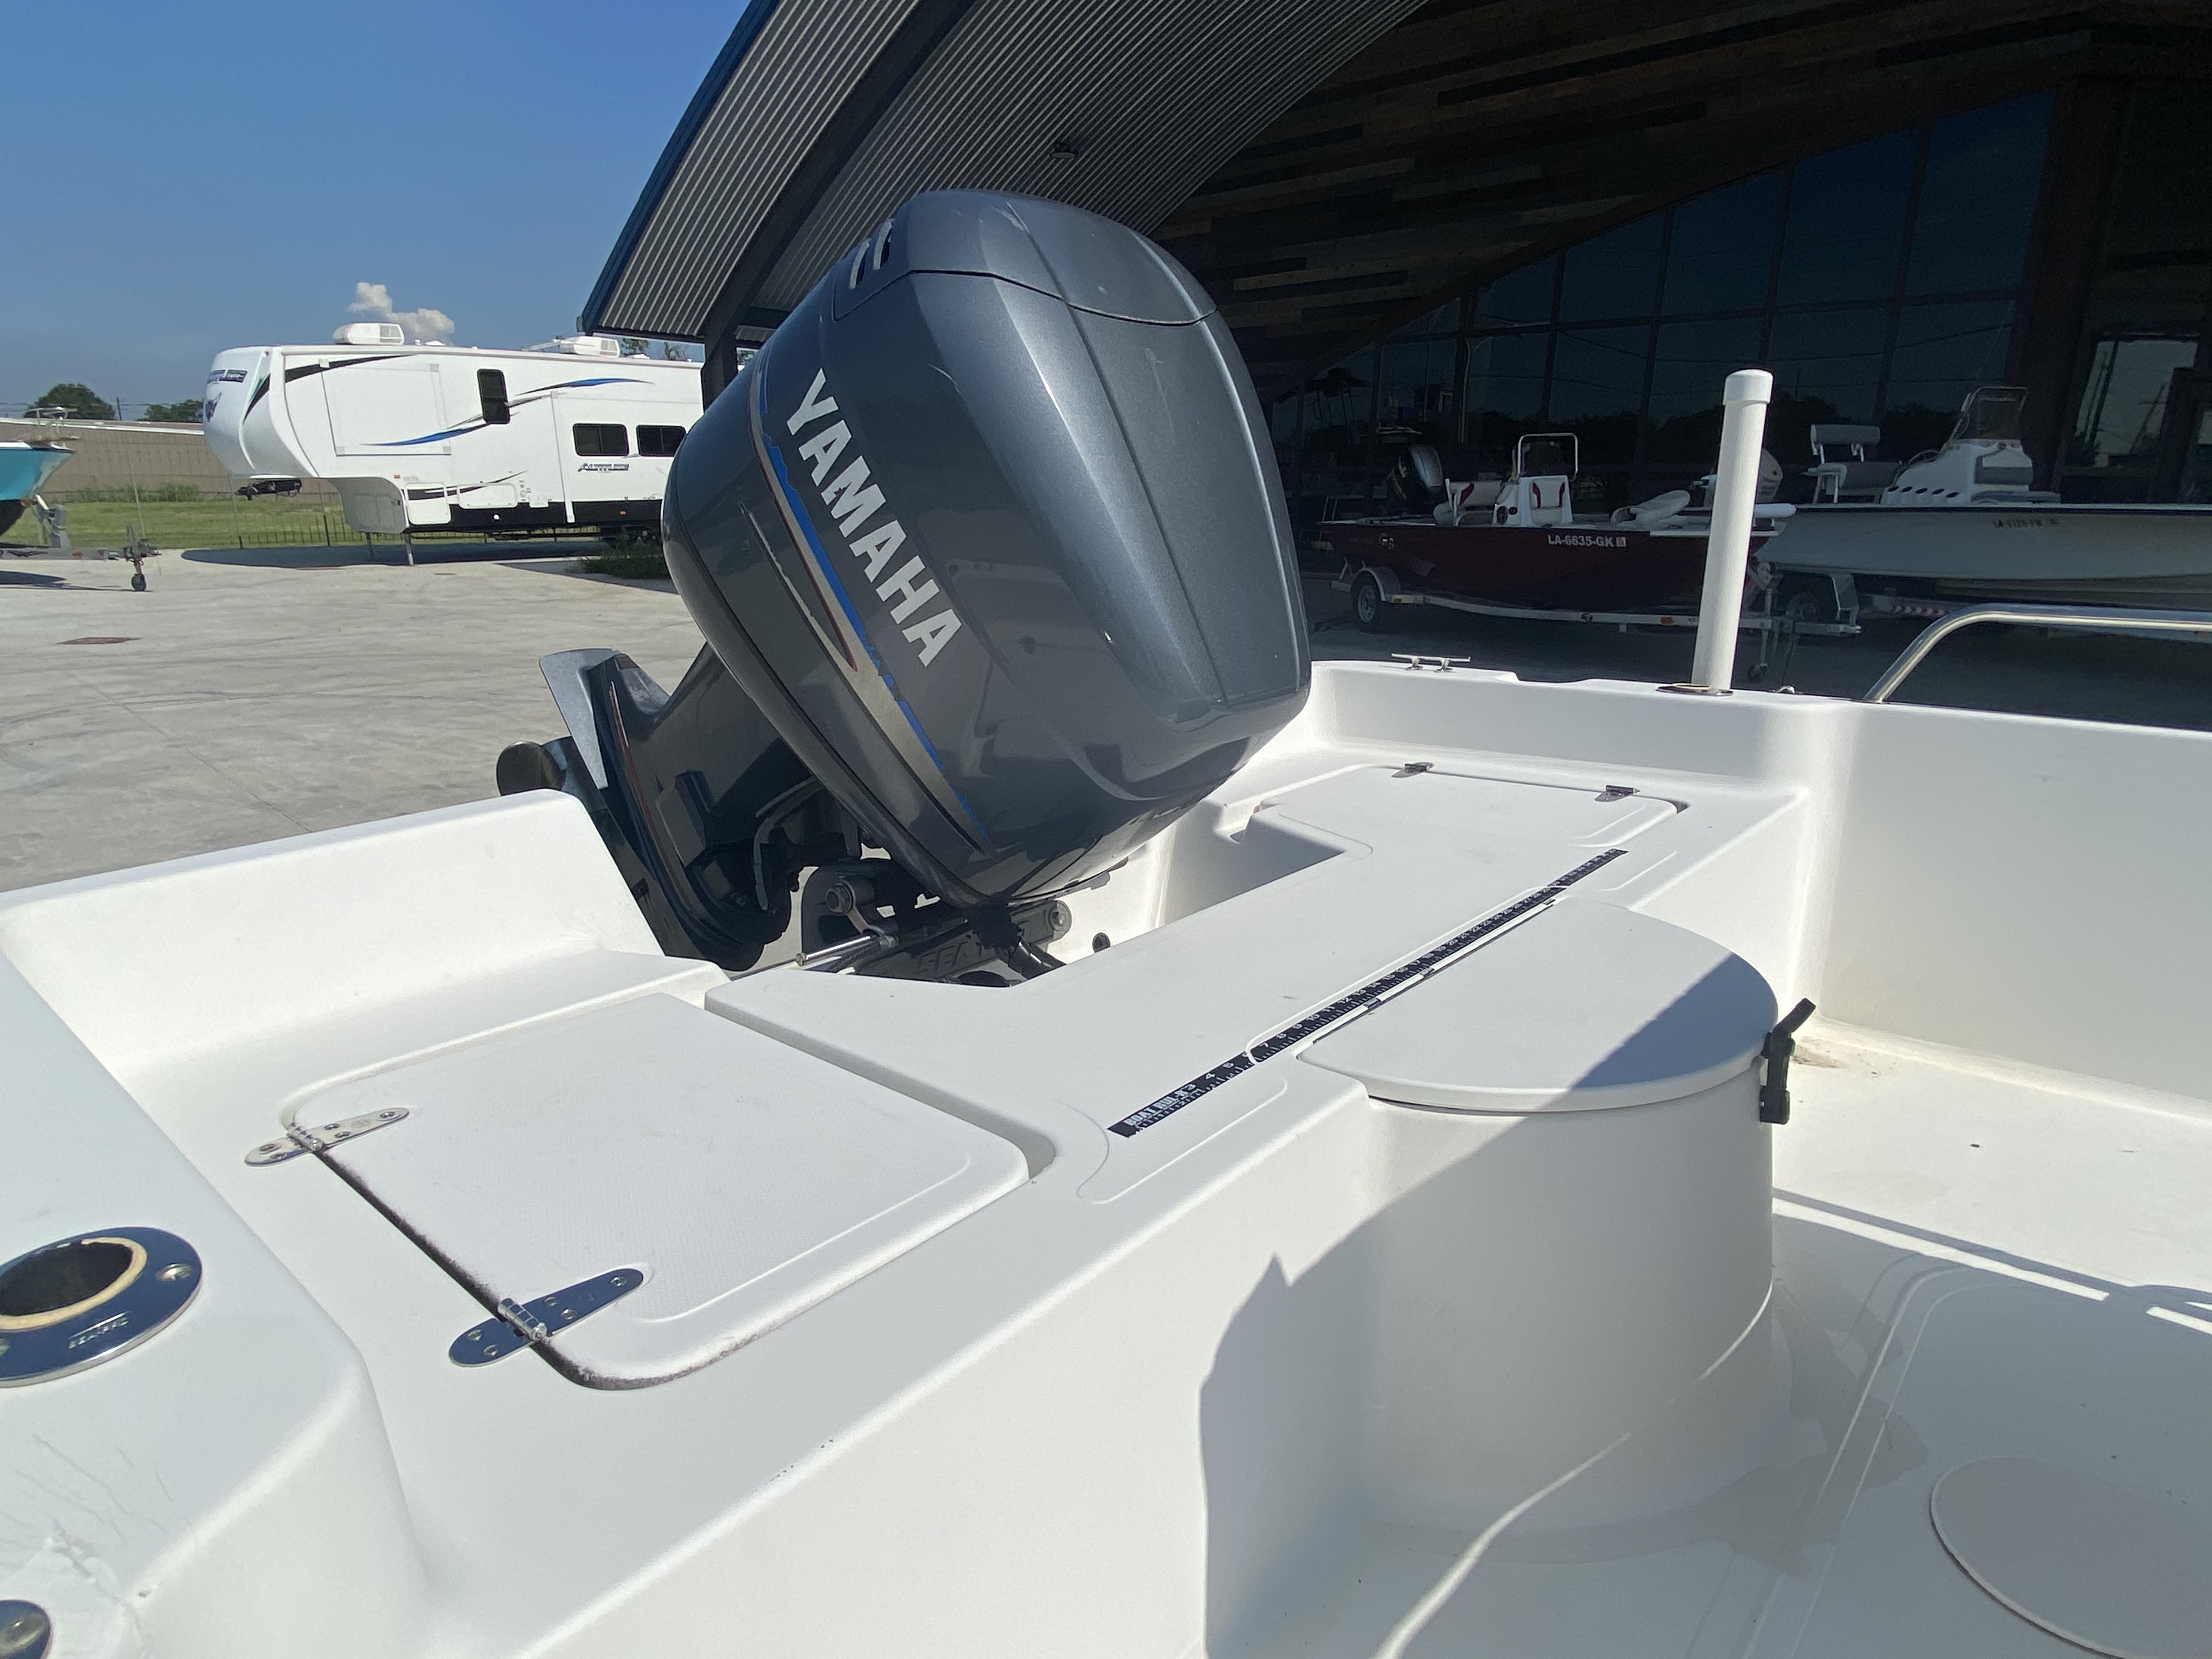 2003 Sea Pro boat for sale, model of the boat is SV2100 & Image # 11 of 12